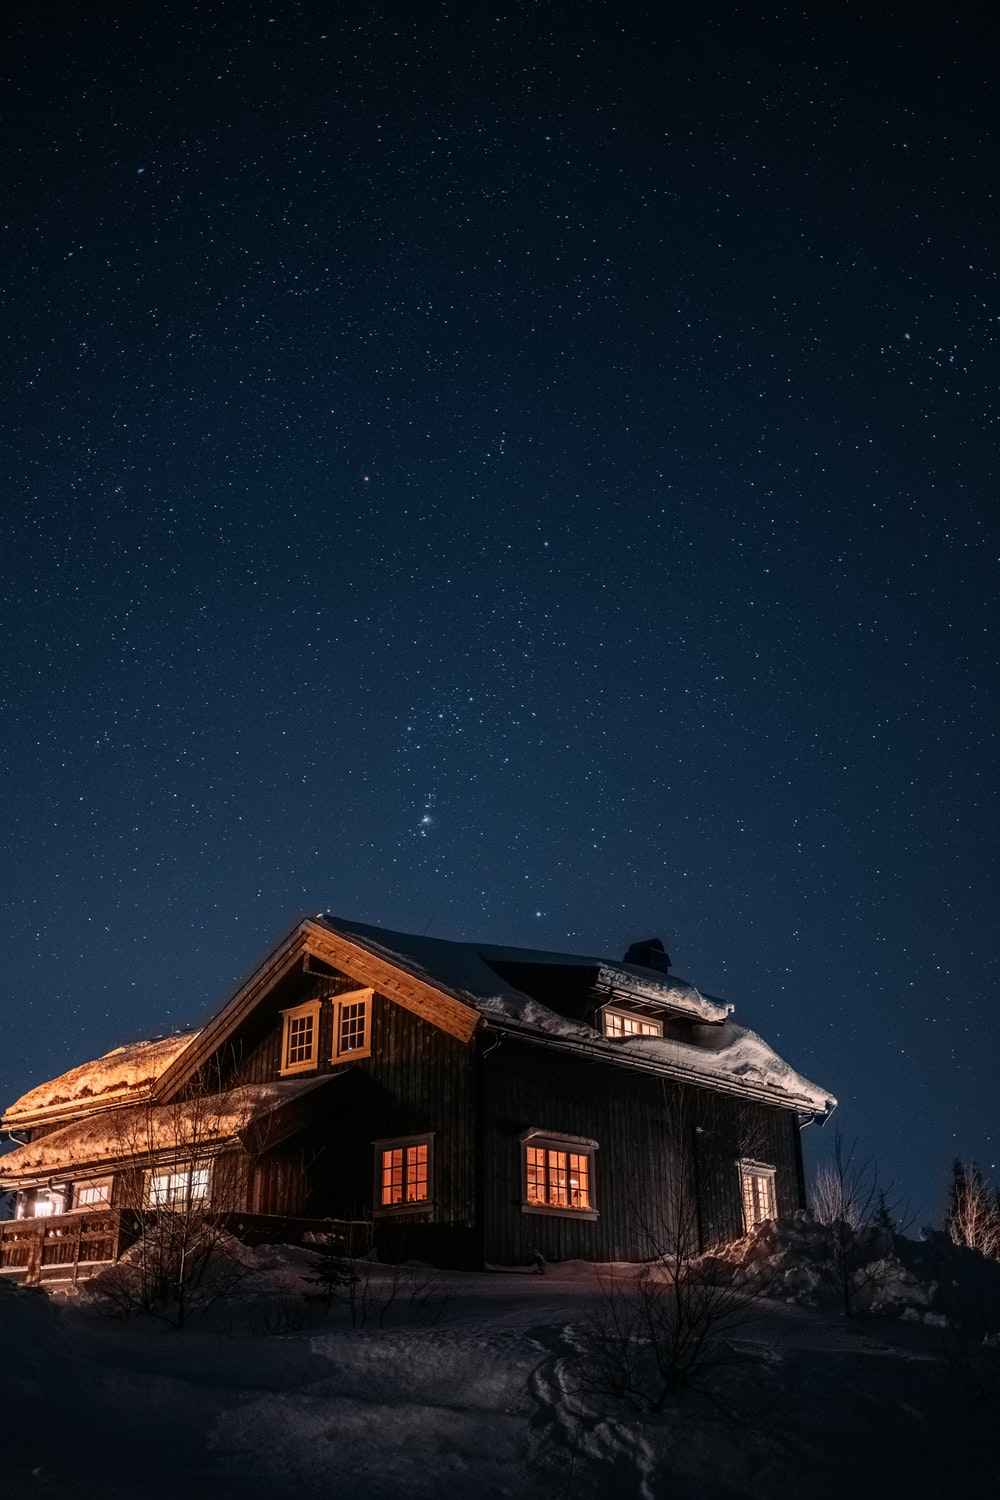 brown wooden house under blue sky during night time